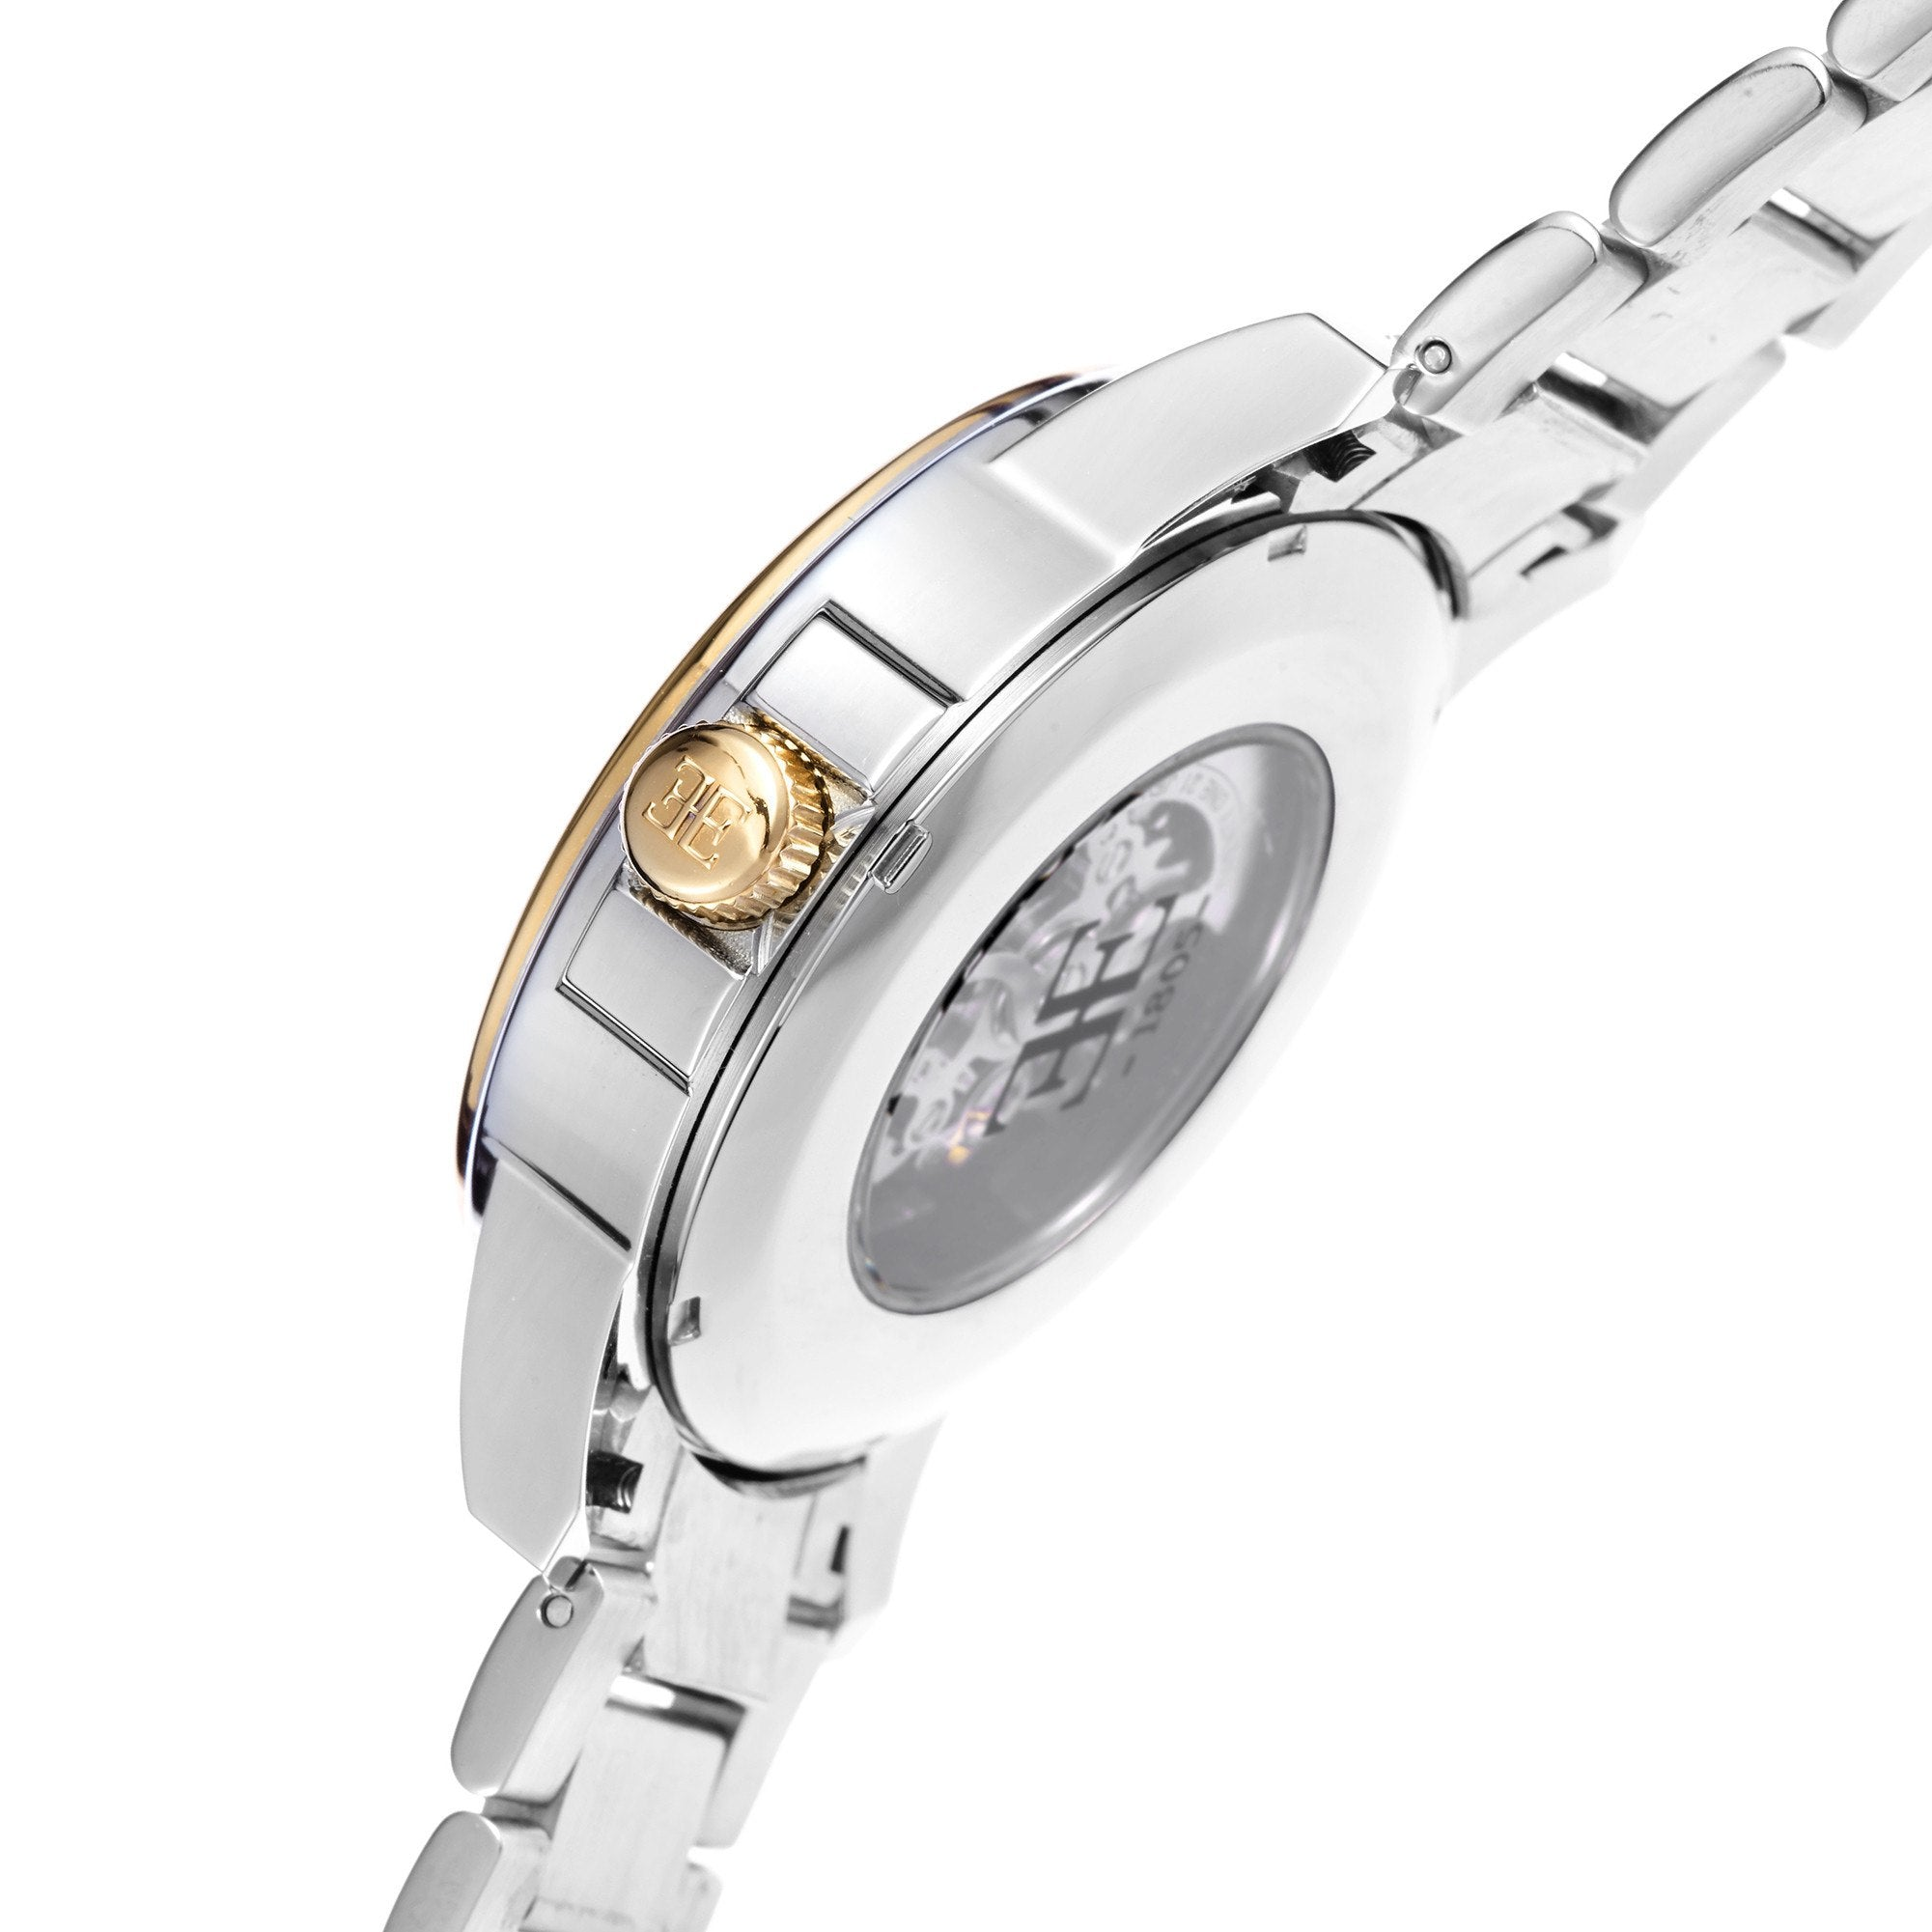 Thomas Earnshaw THOMAS EARNSHAW SWISS MADE Beagle Automatic Skeleton Watch With Solid Stainless Steel Bracelet ES-0029-22